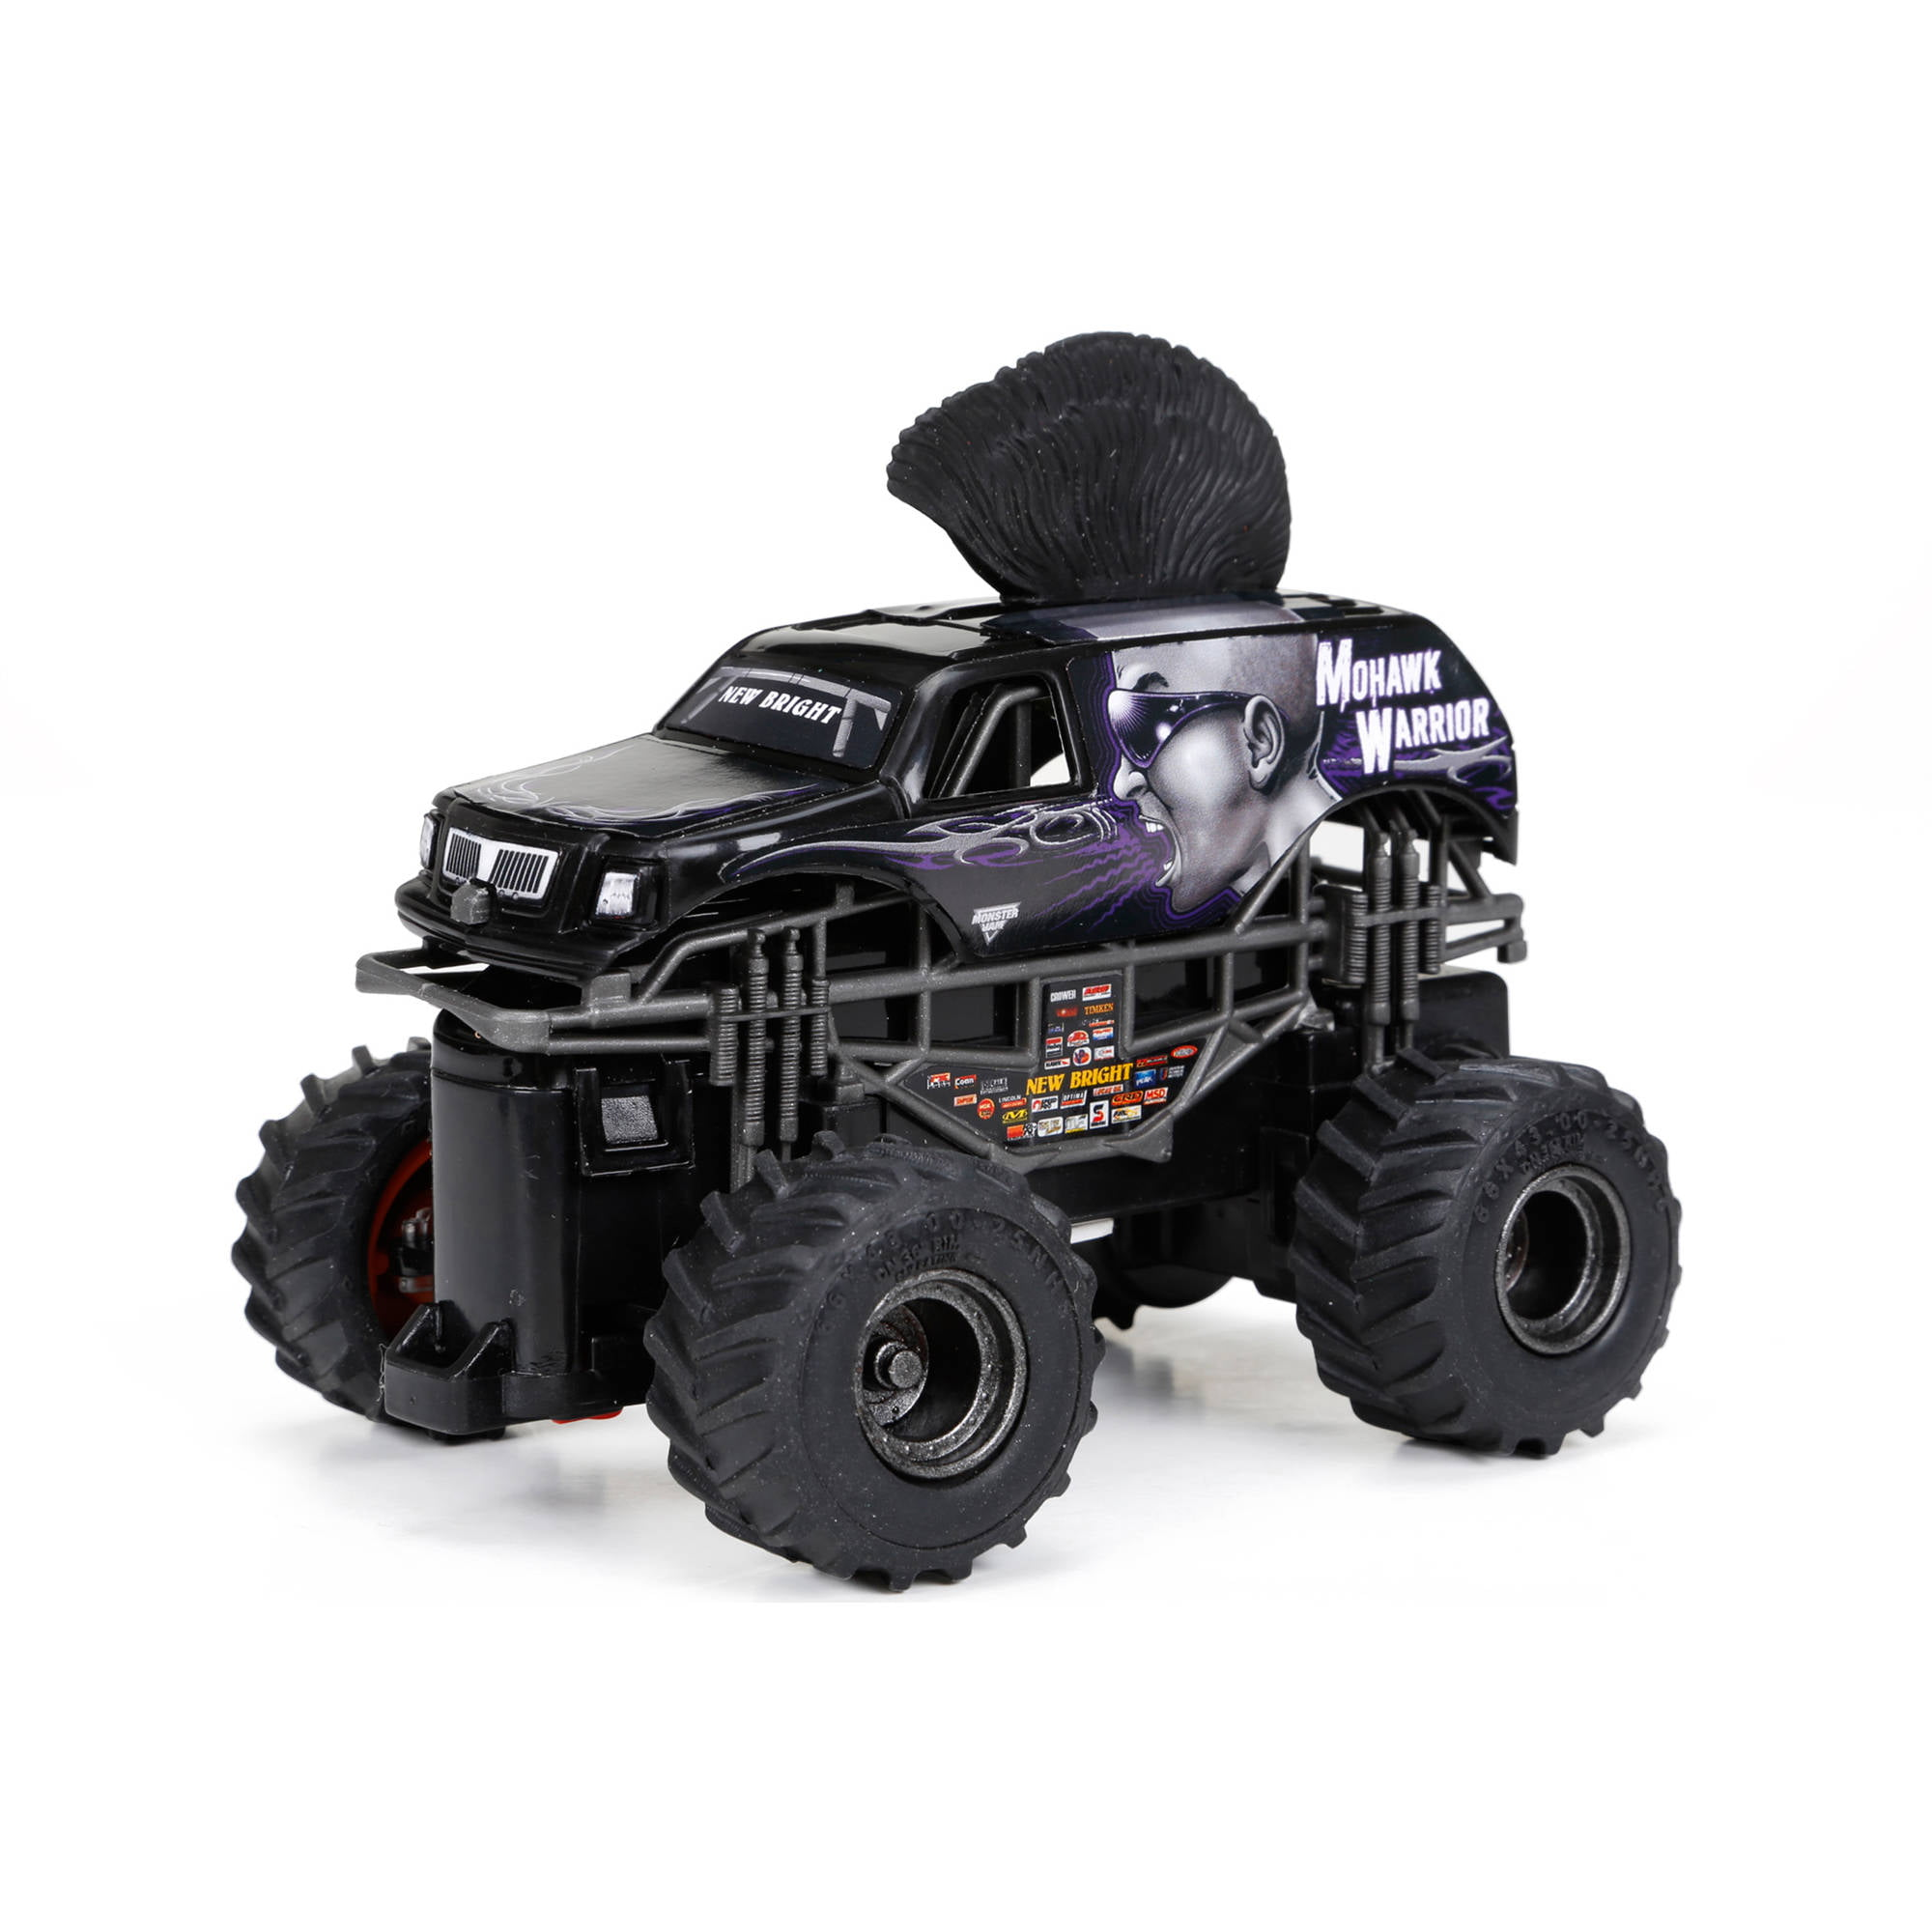 Full Function Monster Jam Mini Mohawk Warrior R C Car Black